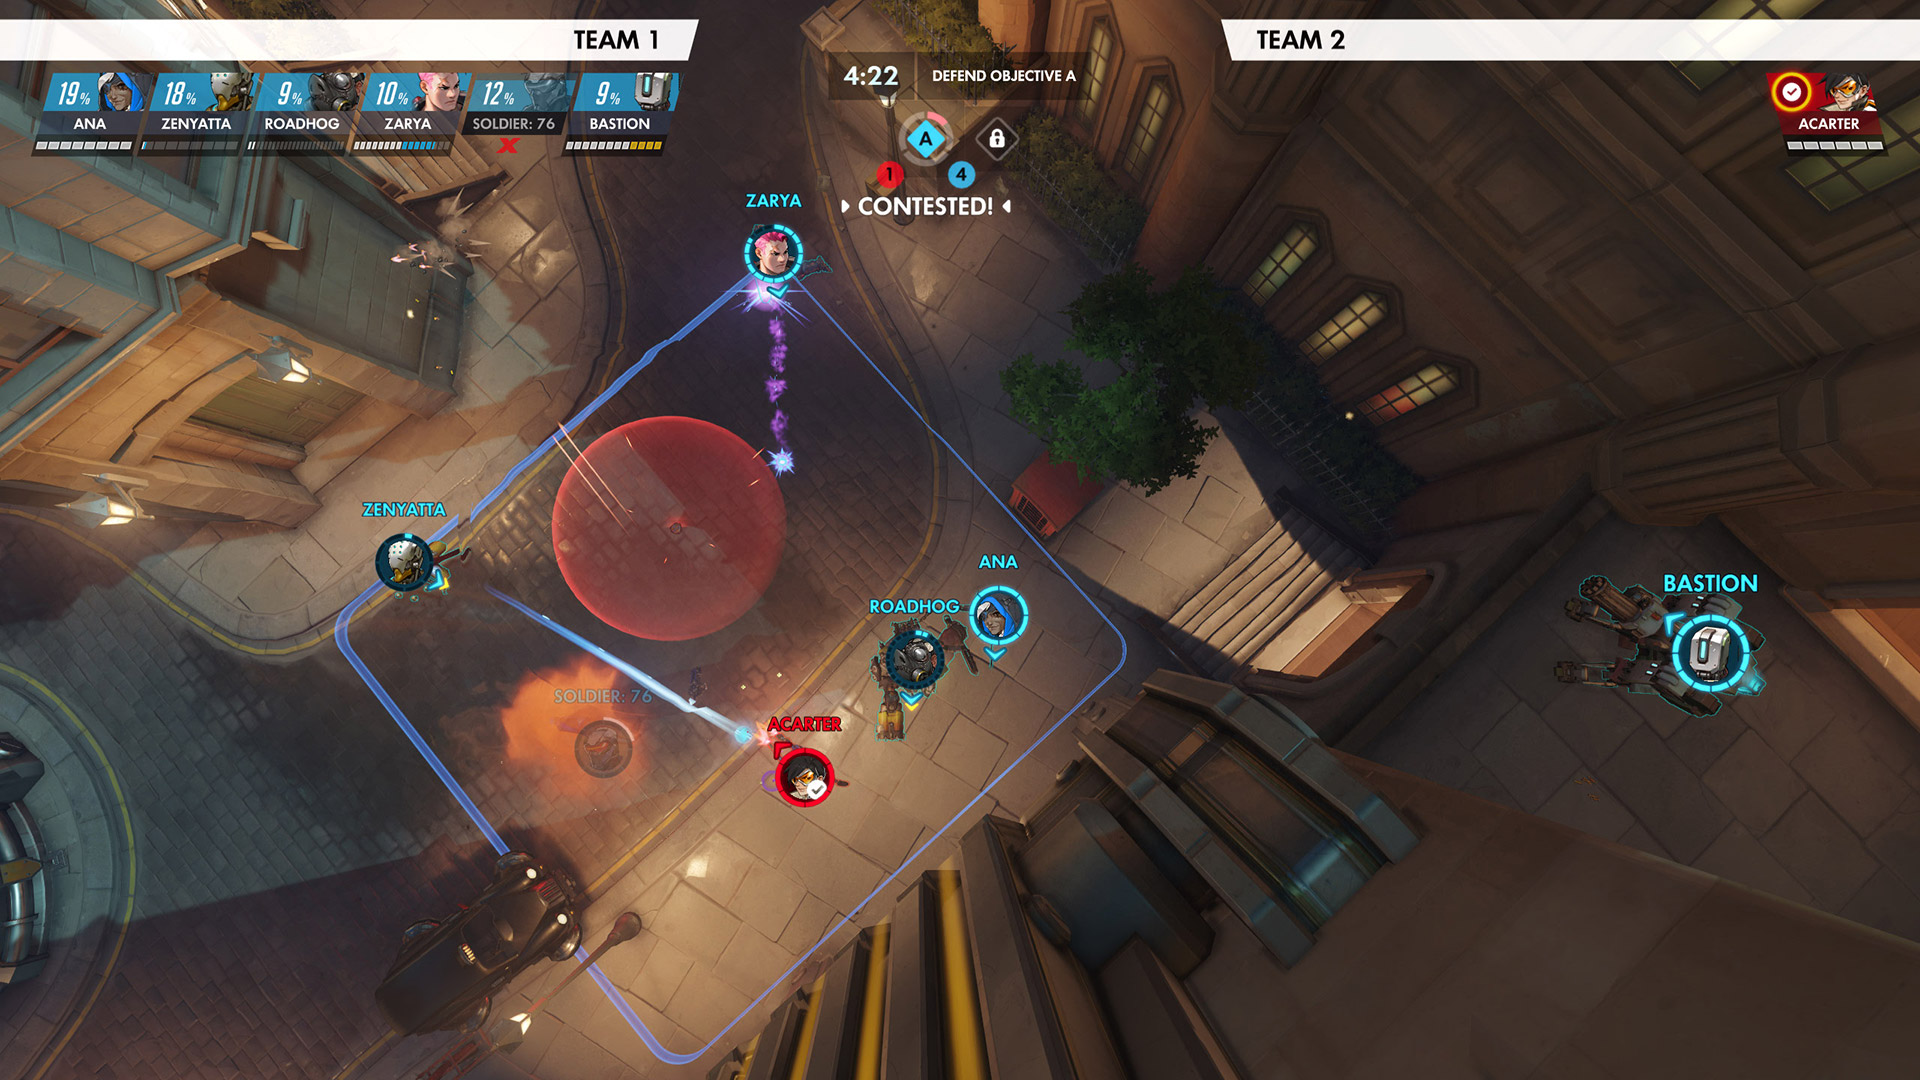 You can see Overwatch replays from an overhead view